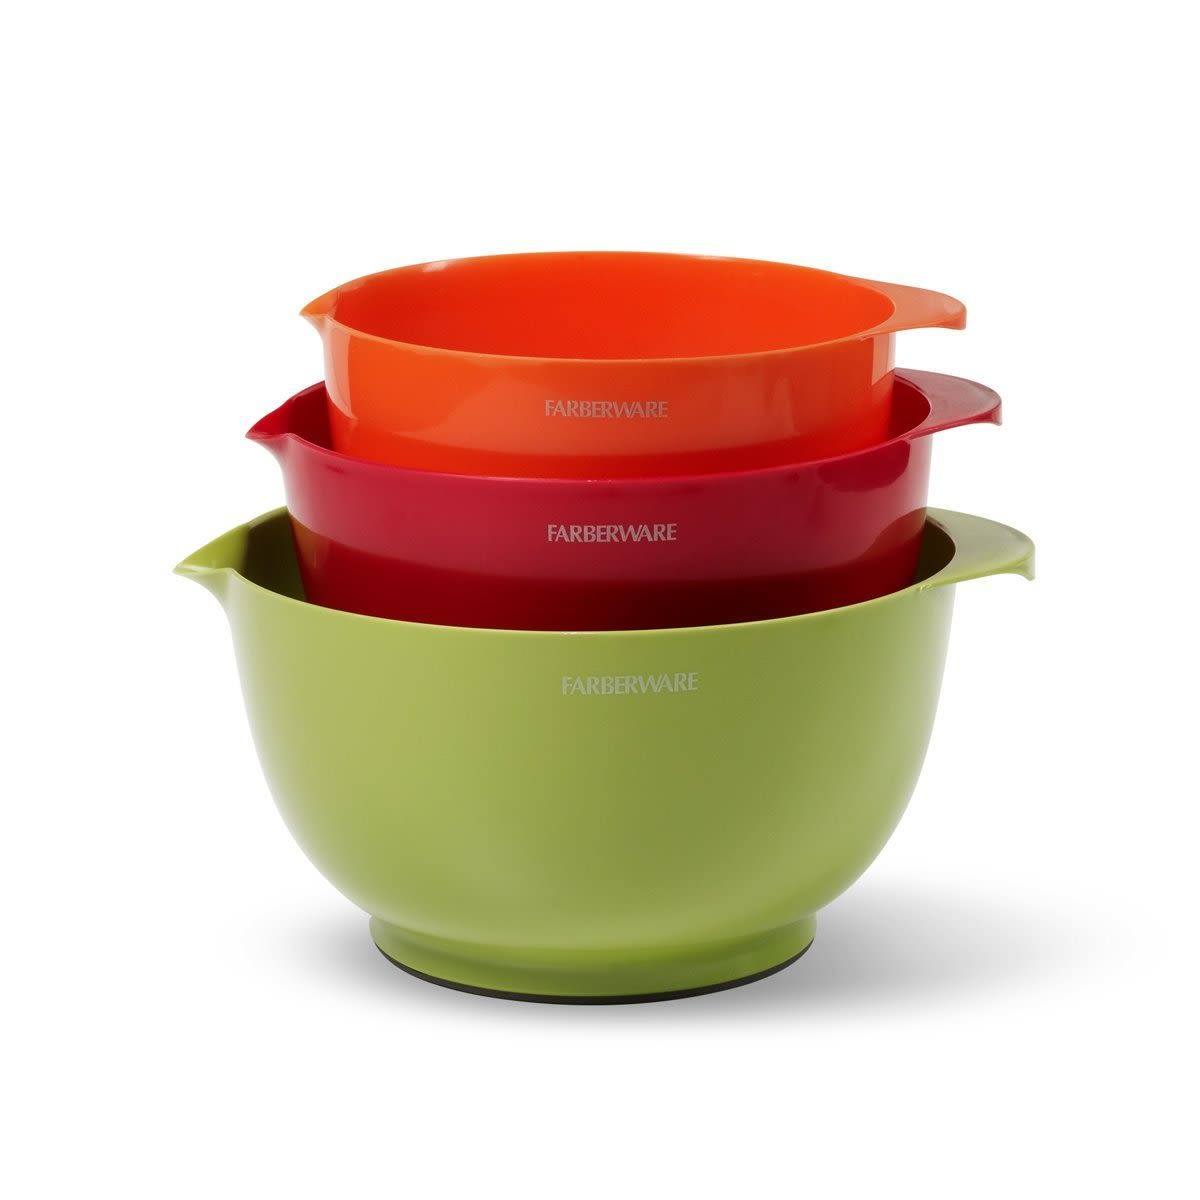 15 Classic Mixing Bowls with Pouring Spouts: gallery image 15